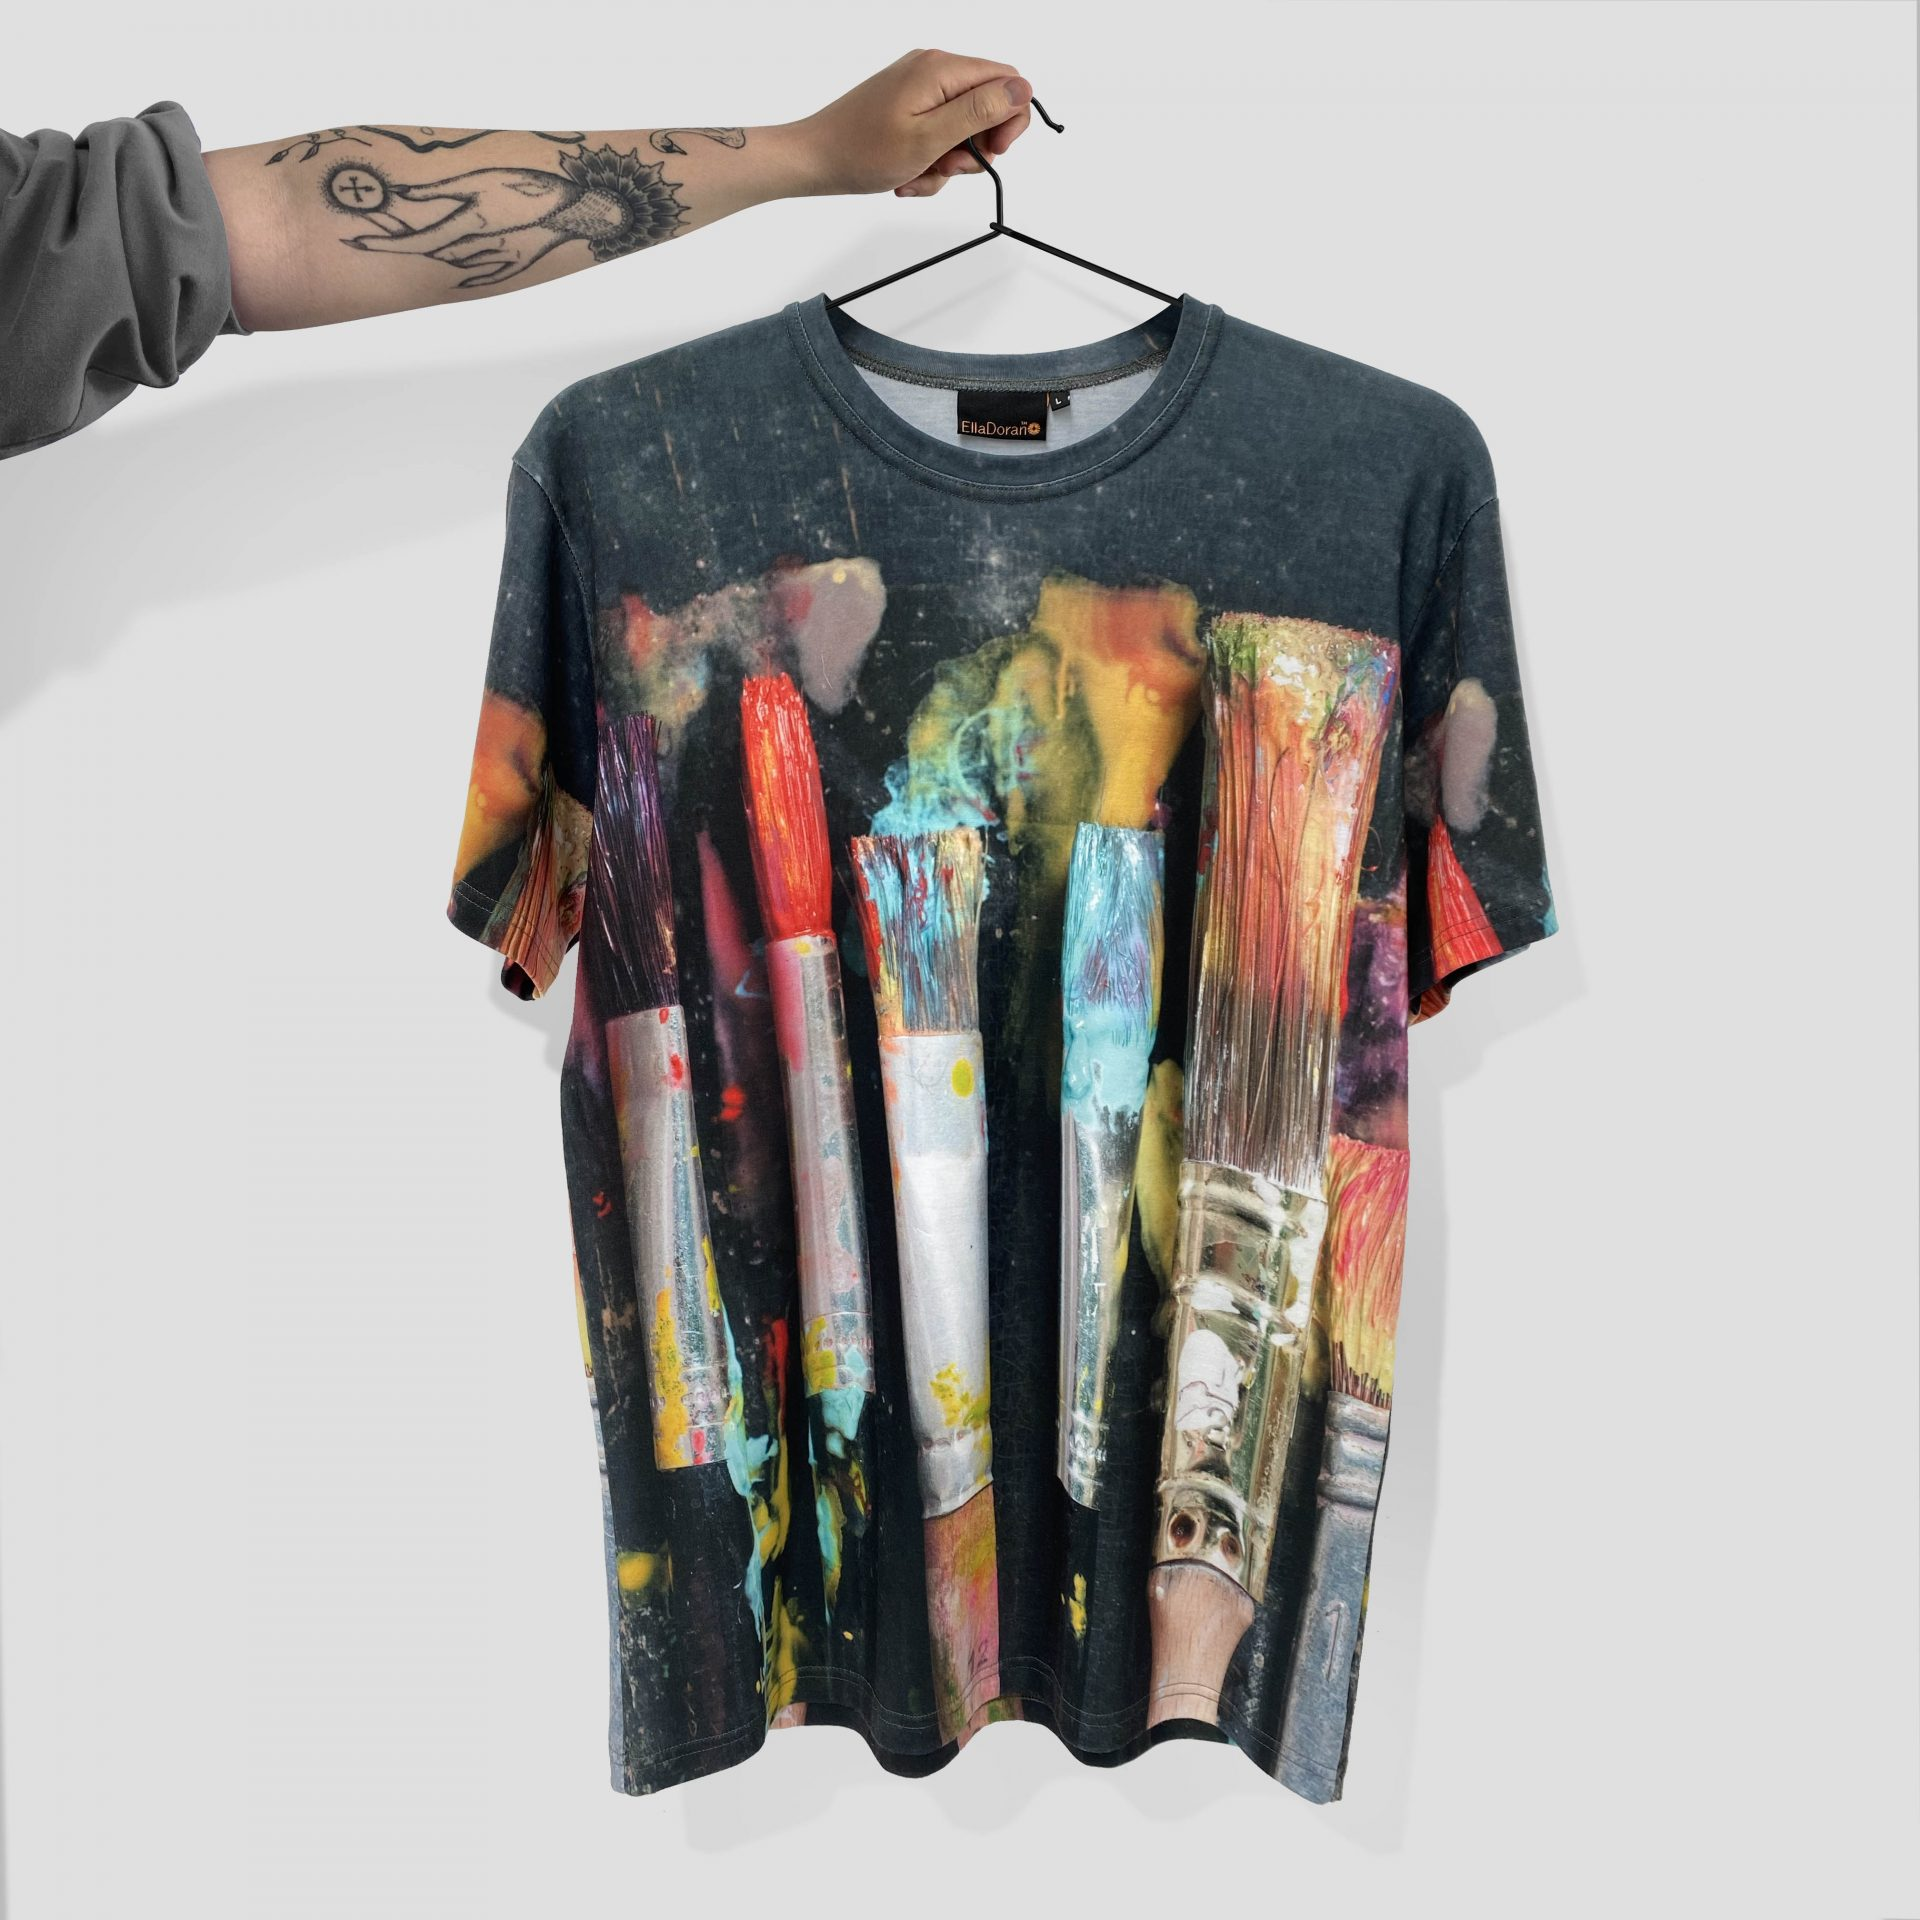 Ella Doran for Tate Dye Sublimation t-shirt by Paul Bristow's UK made t-shirt